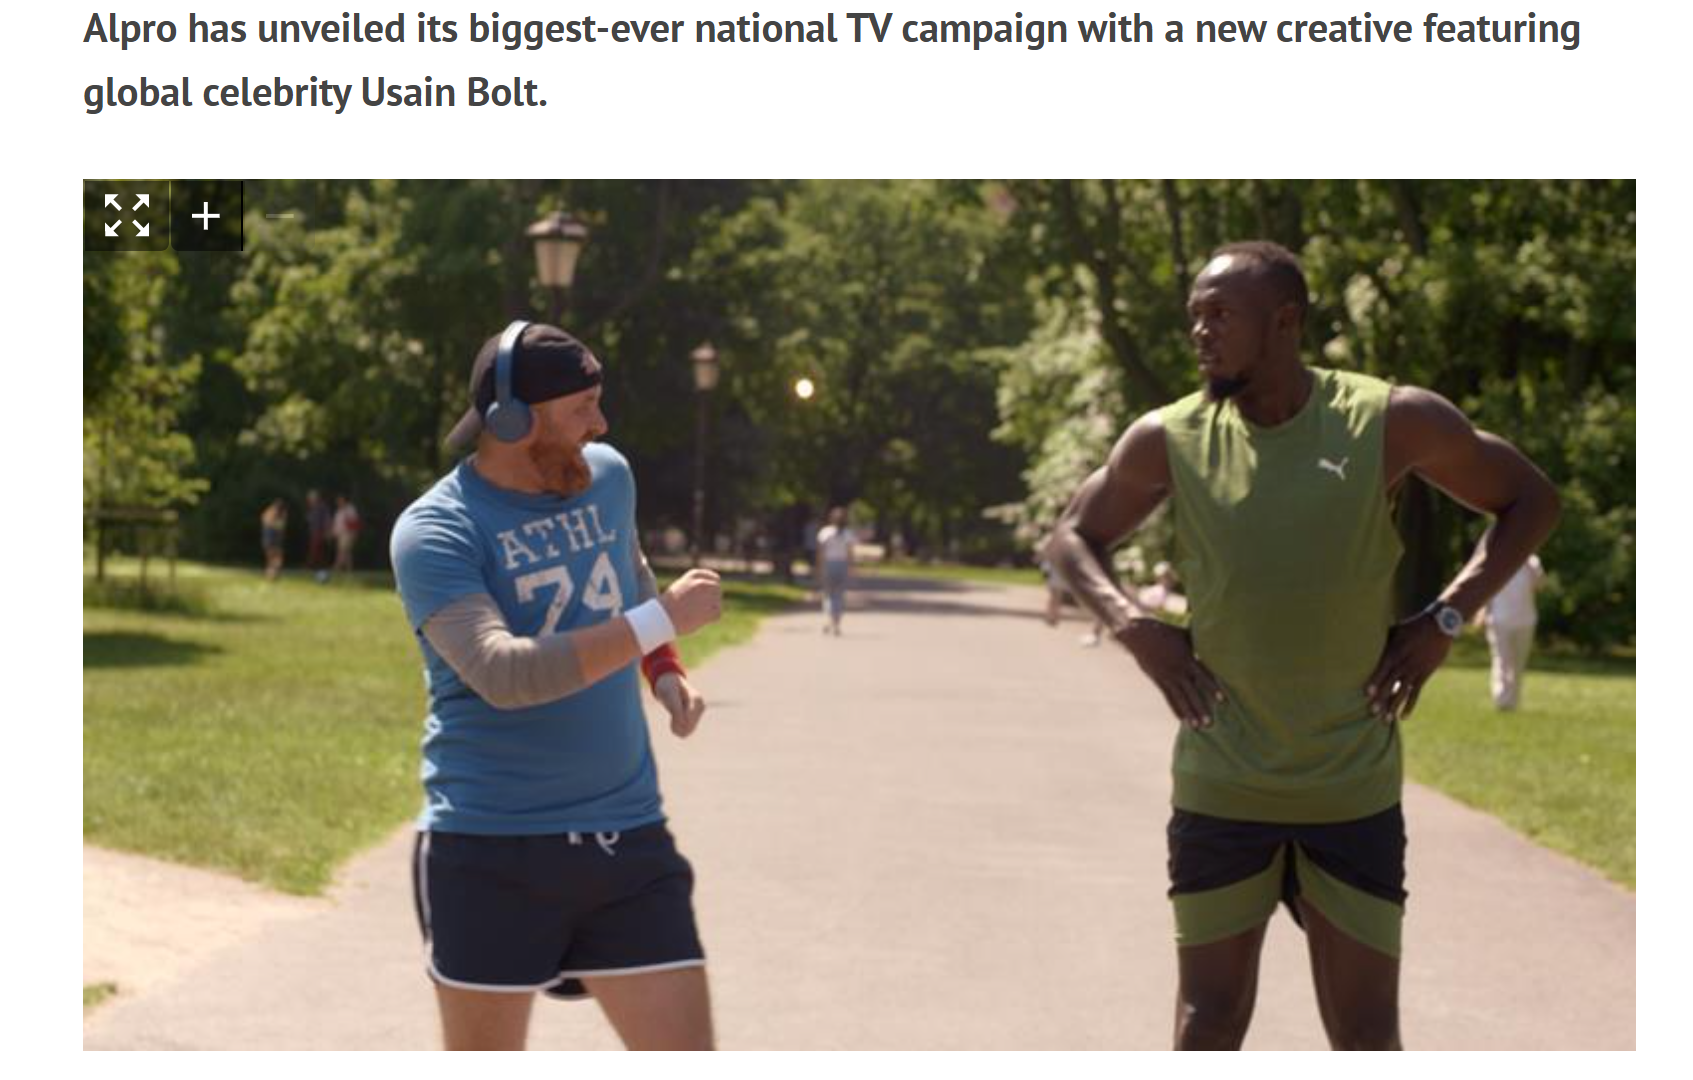 Screenshot of reporting on the Usain Bolt campaign